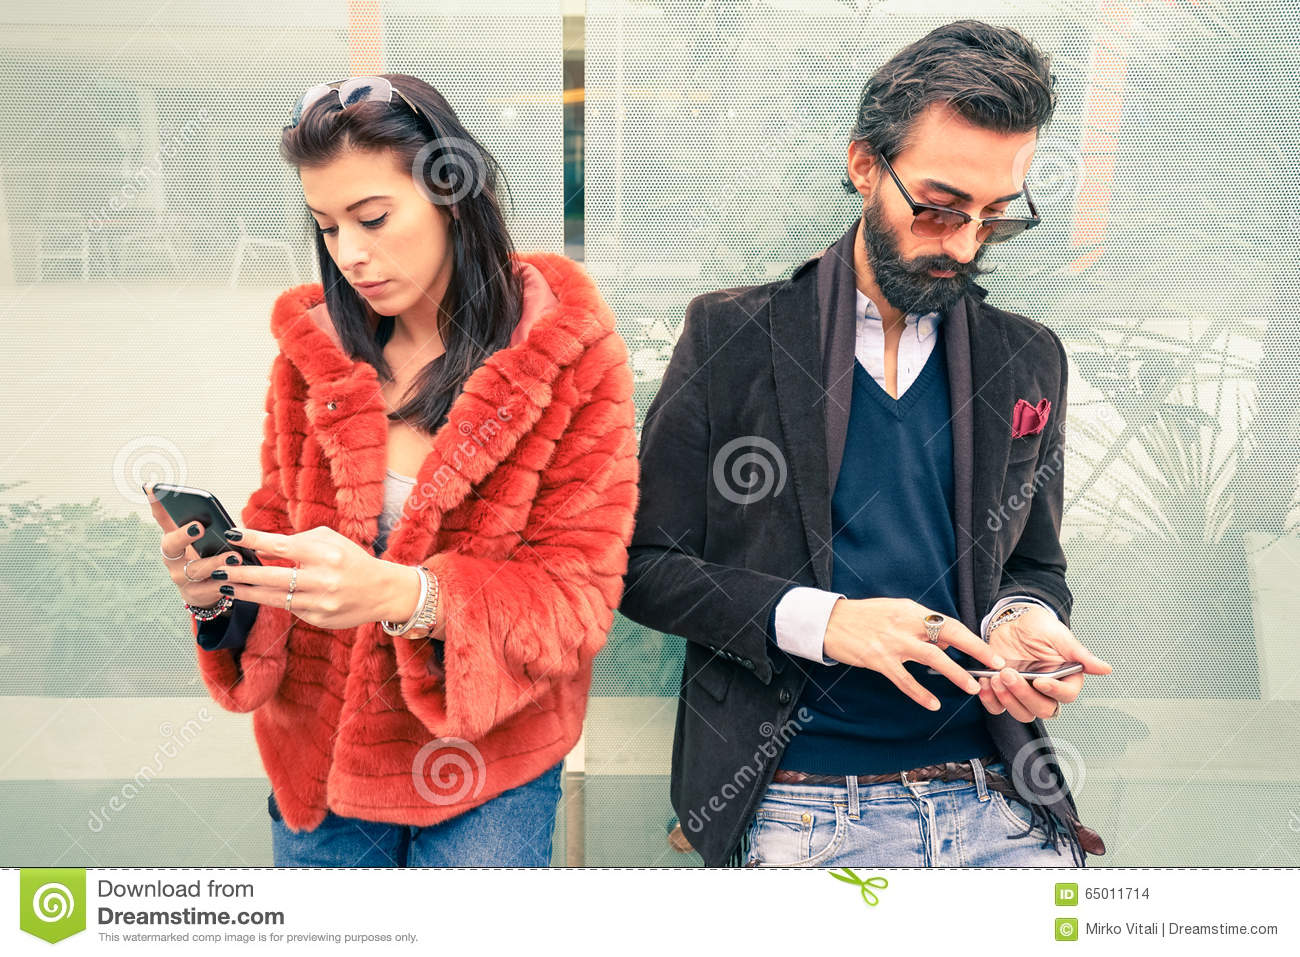 Hipster couple in sad moment ignoring each other using smartphone